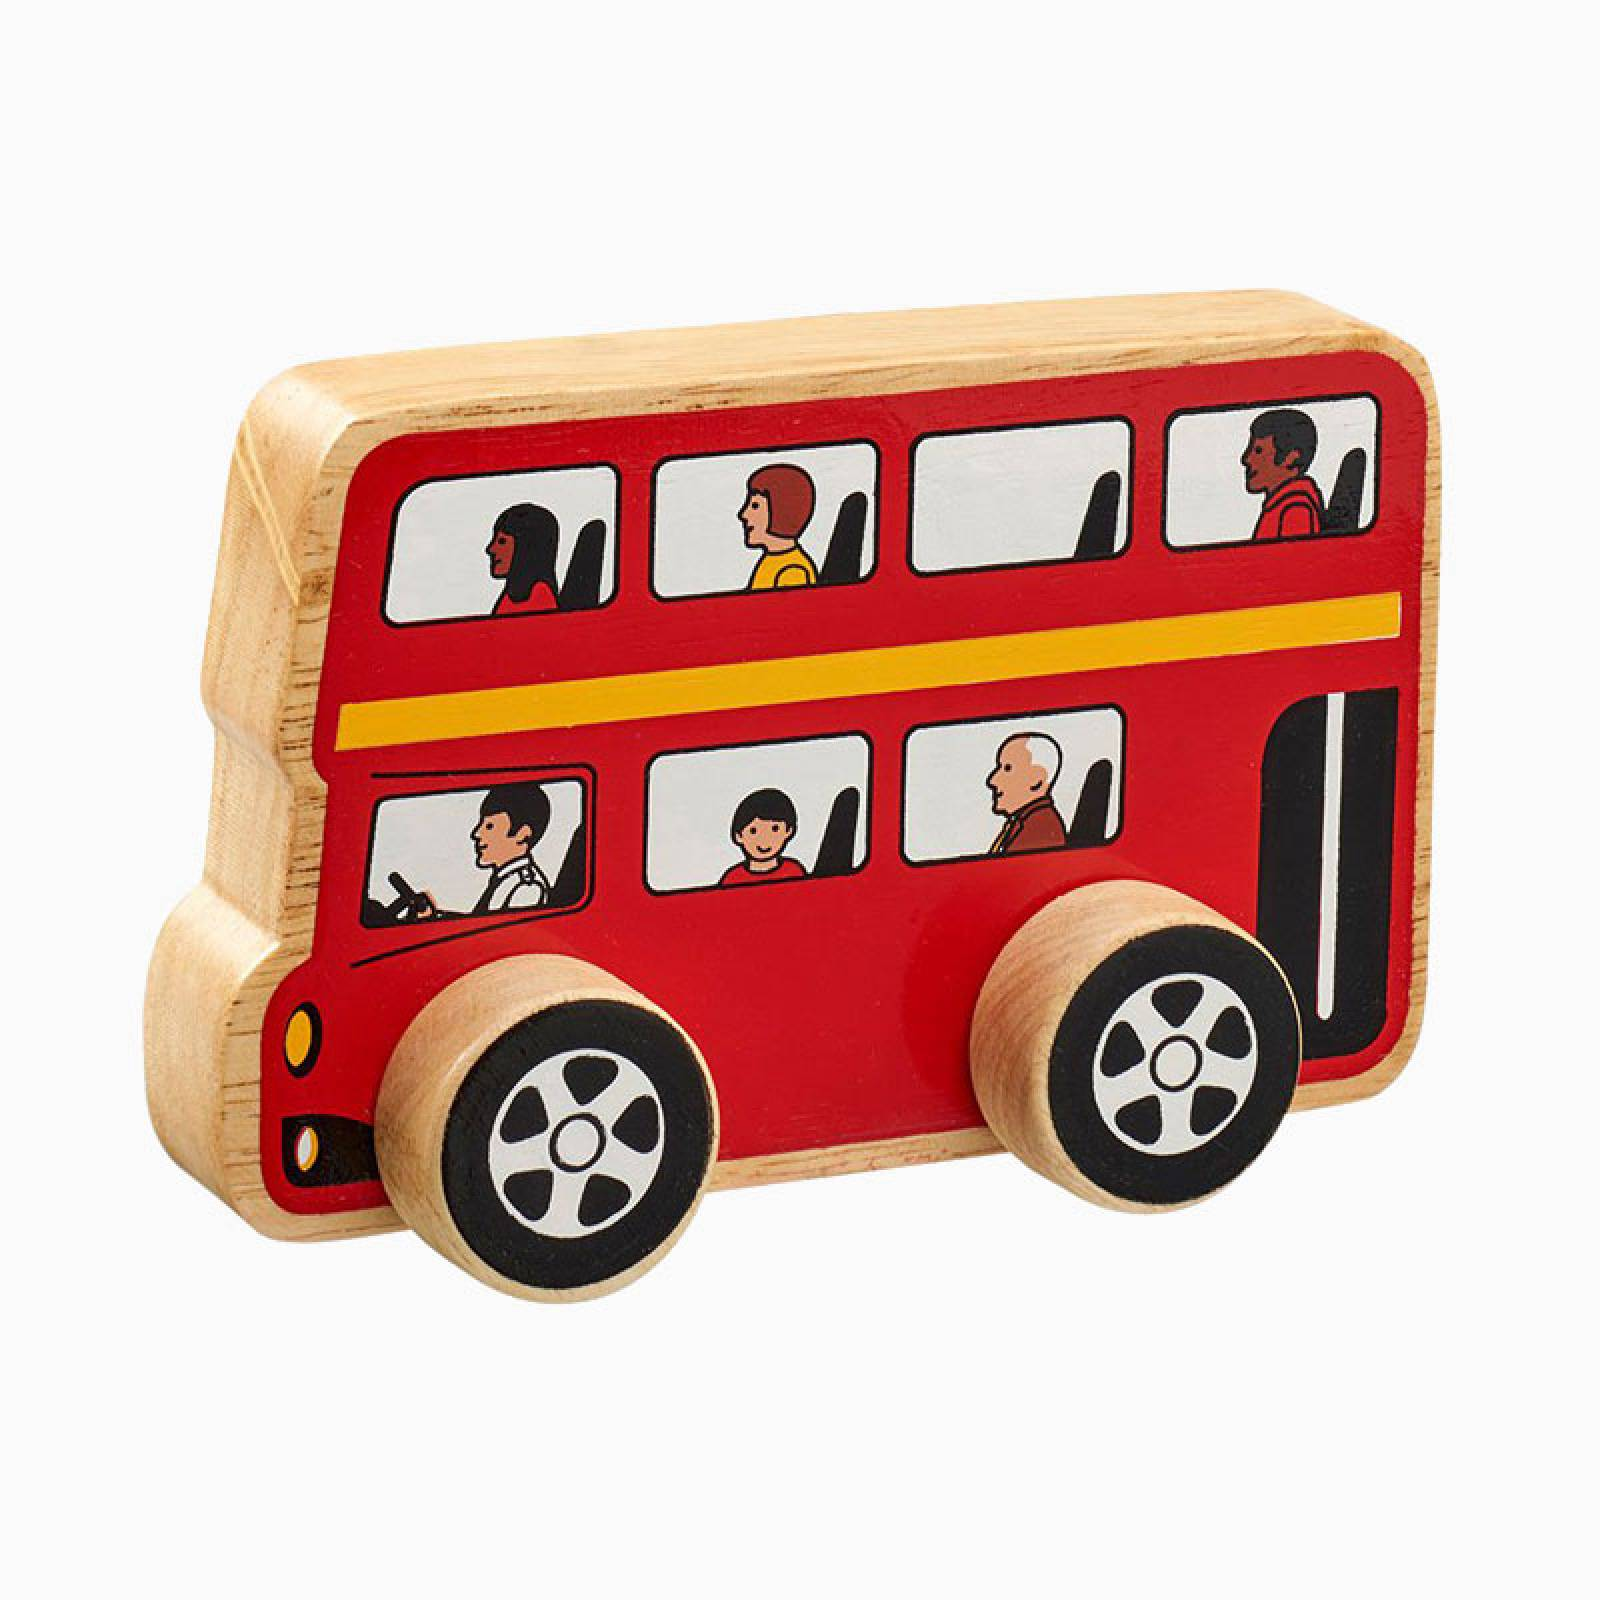 Little Wooden Bus Made From Natural Wood By Lanka Kade